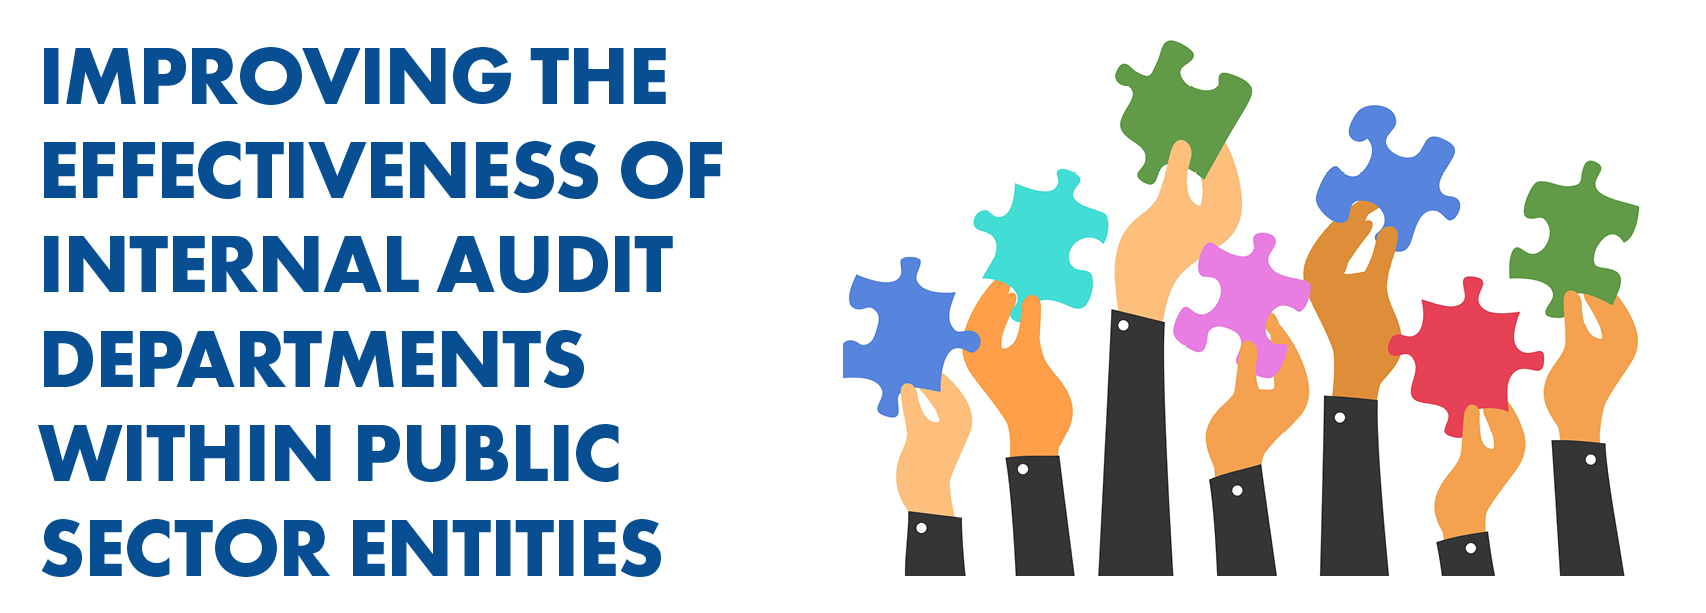 Improving the Effectiveness of Internal Audit Departments within Public Sector Entities